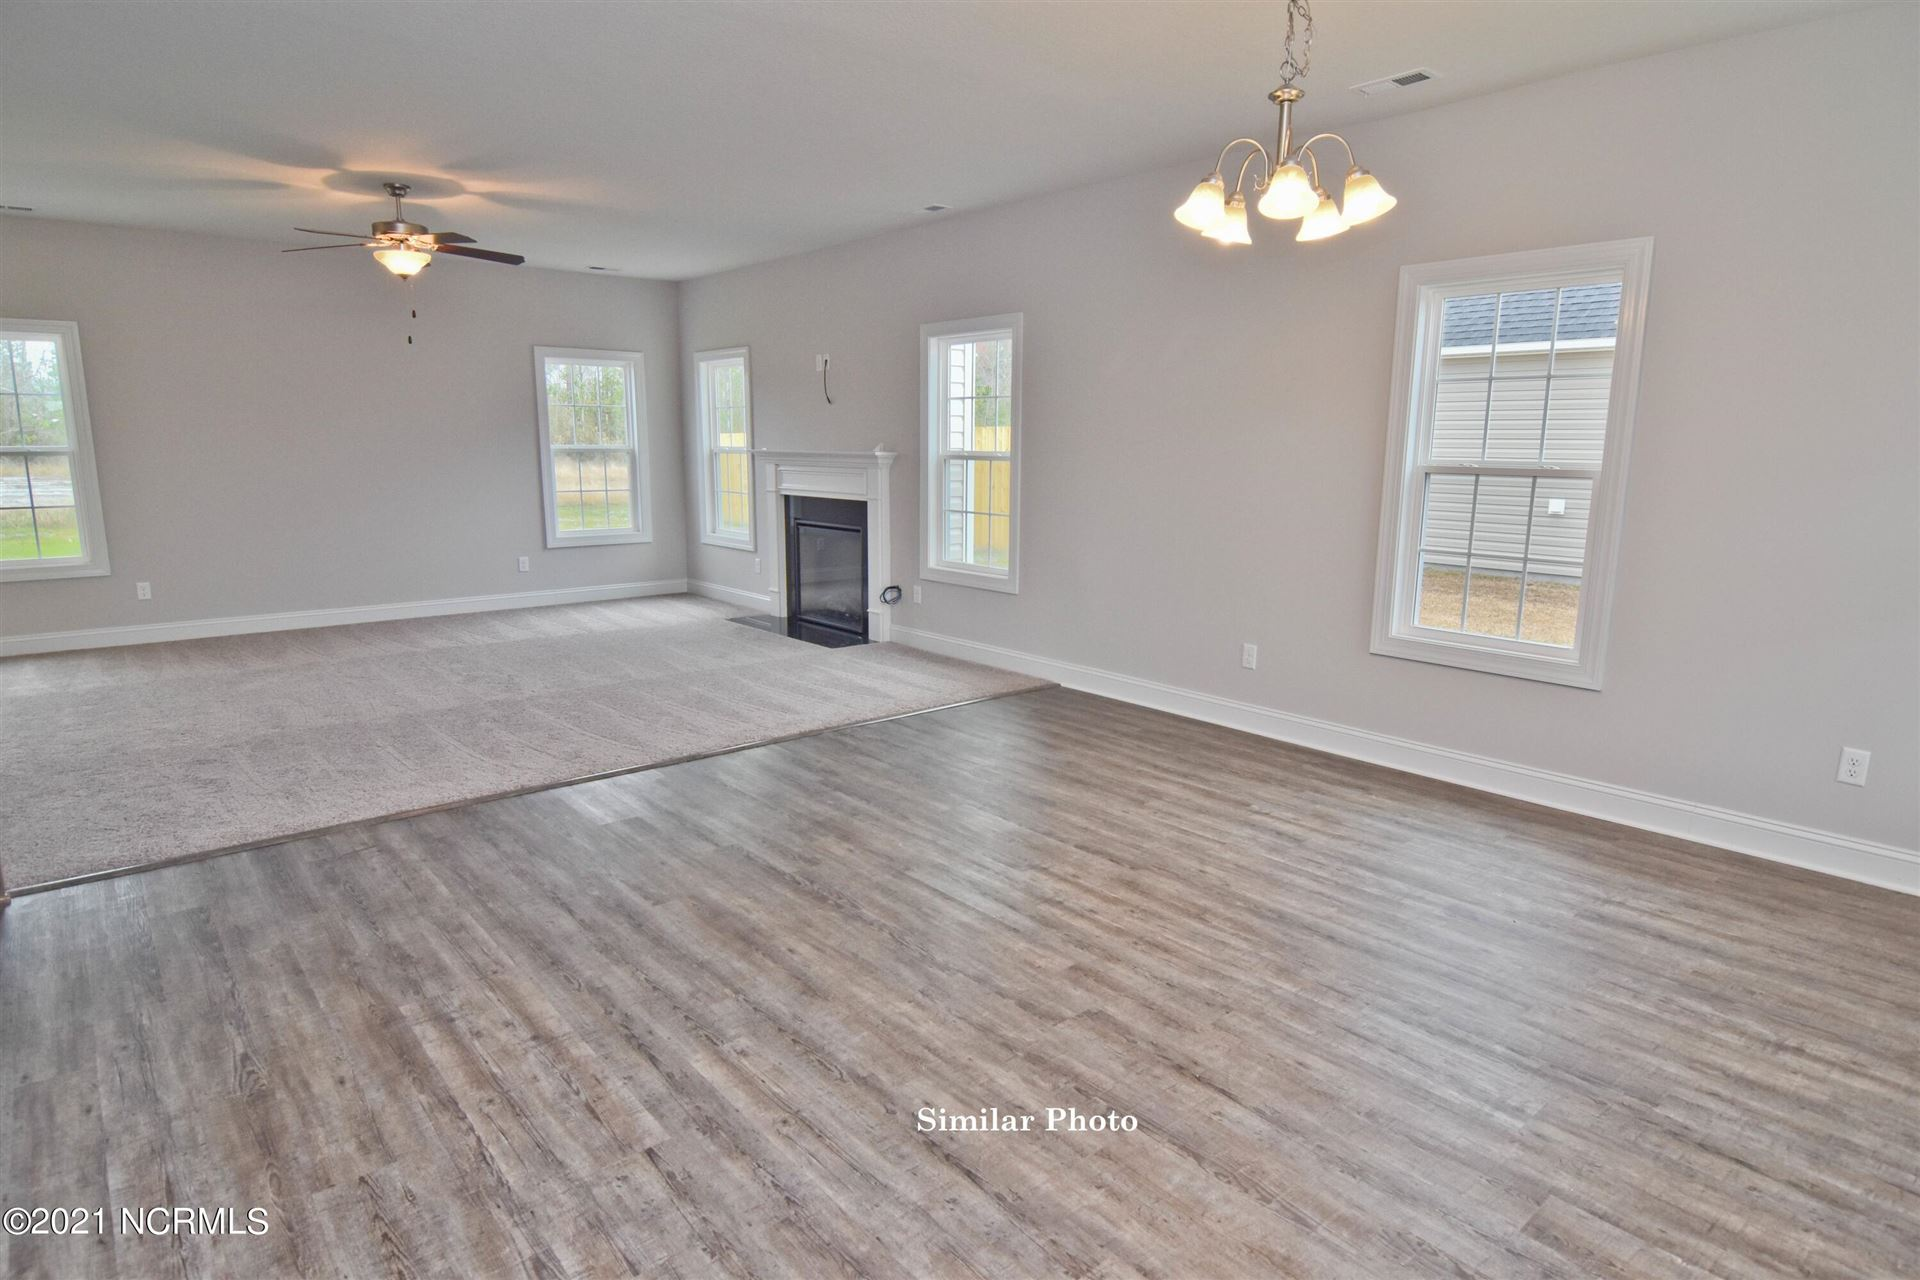 Photo of 302 Sumac Court, Sneads Ferry, NC 28460 (MLS # 100292037)